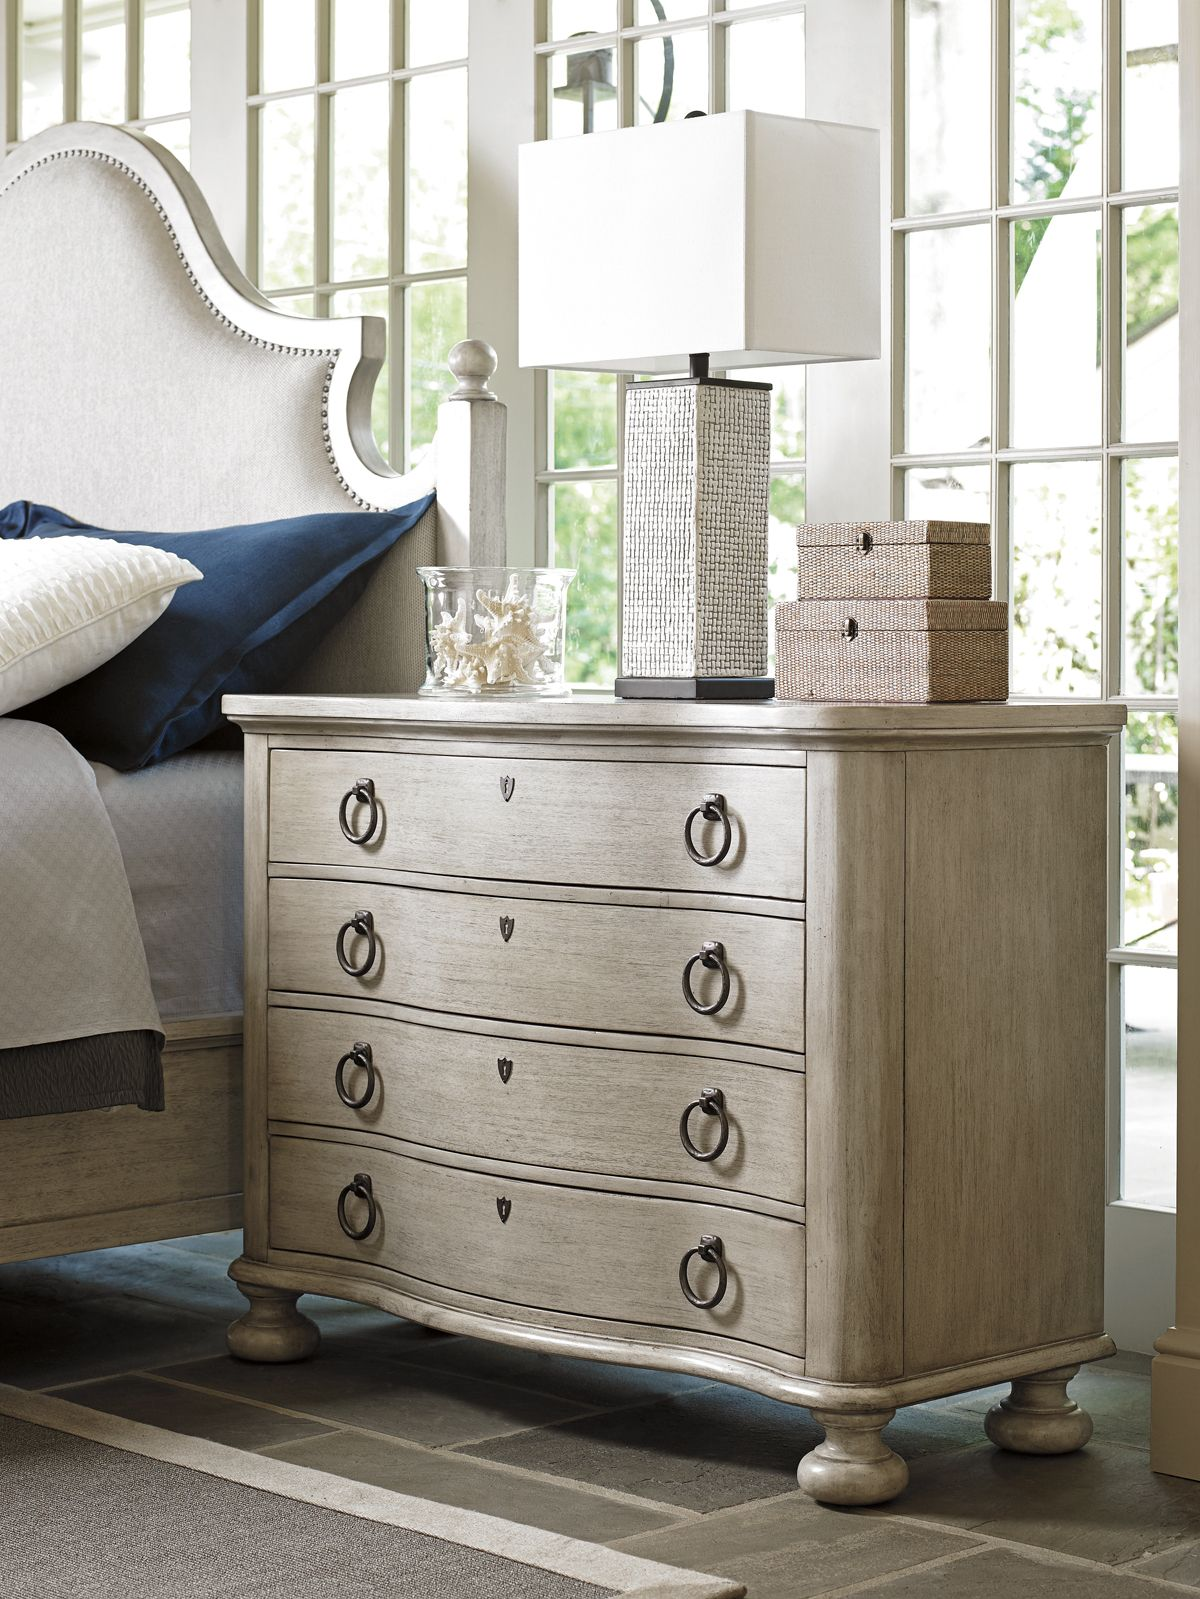 Homestyle Furniture Kitchener Oyster Bay Bridgeport Bachelors Chest By Lexington Furniture